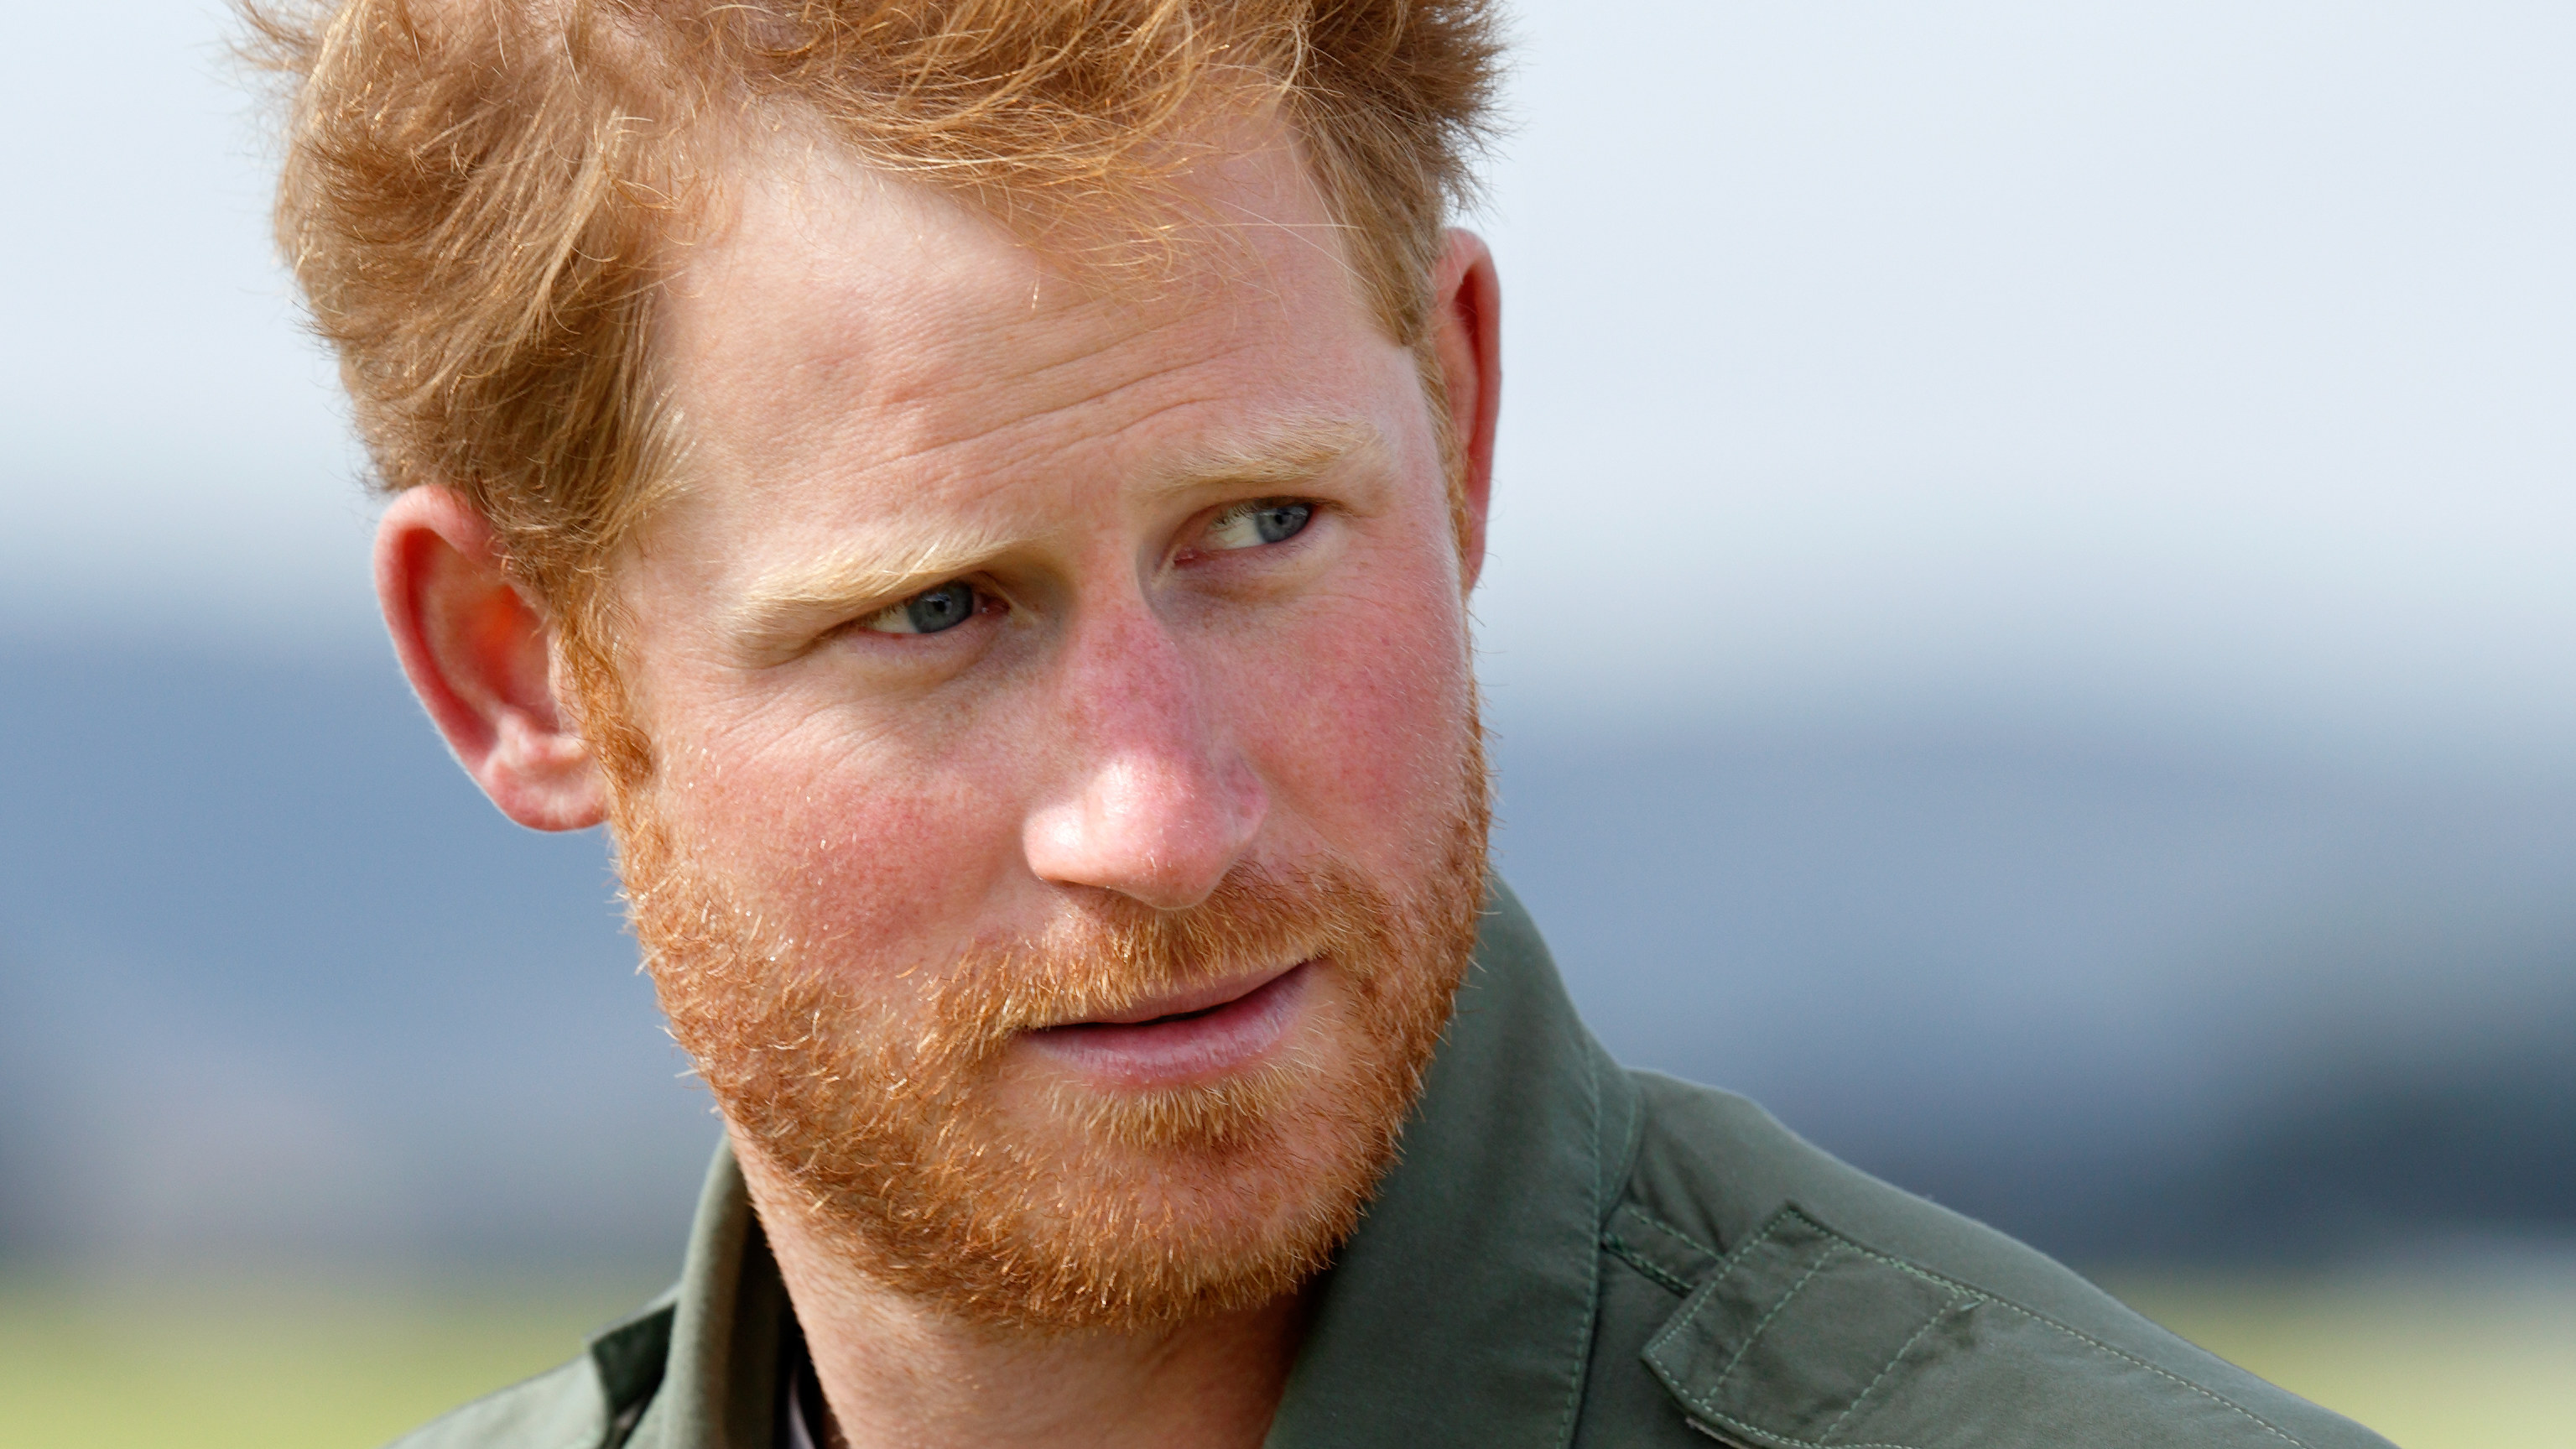 prince harry is over your racism thanks 29secrets https 29secrets com pop culture prince harry racism thanks